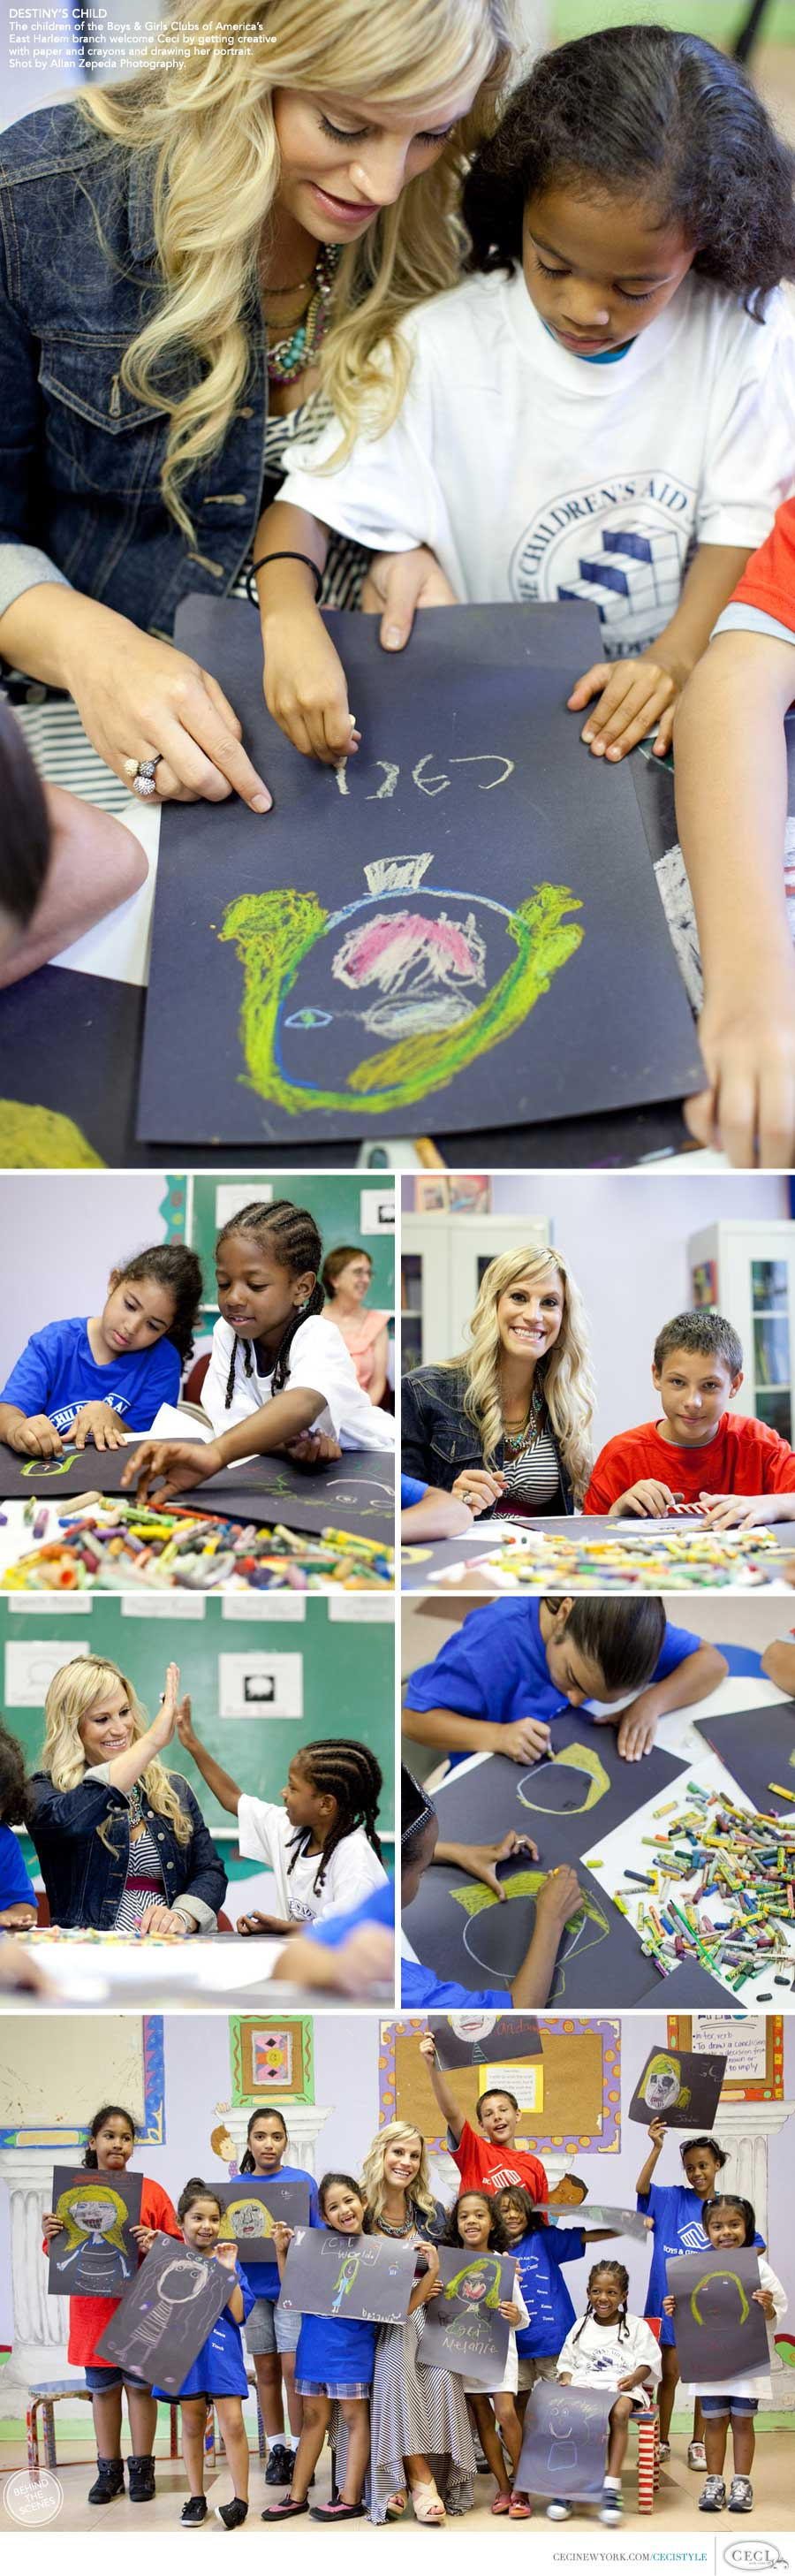 Ceci Johnson of Ceci New York - DESTINY'S CHILD: The children of the Boys & Girls Clubs of America's East Harlem branch welcome Ceci by getting creative with paper and crayons and drawing her portrait. Shot by Allan Zepeda Photography.